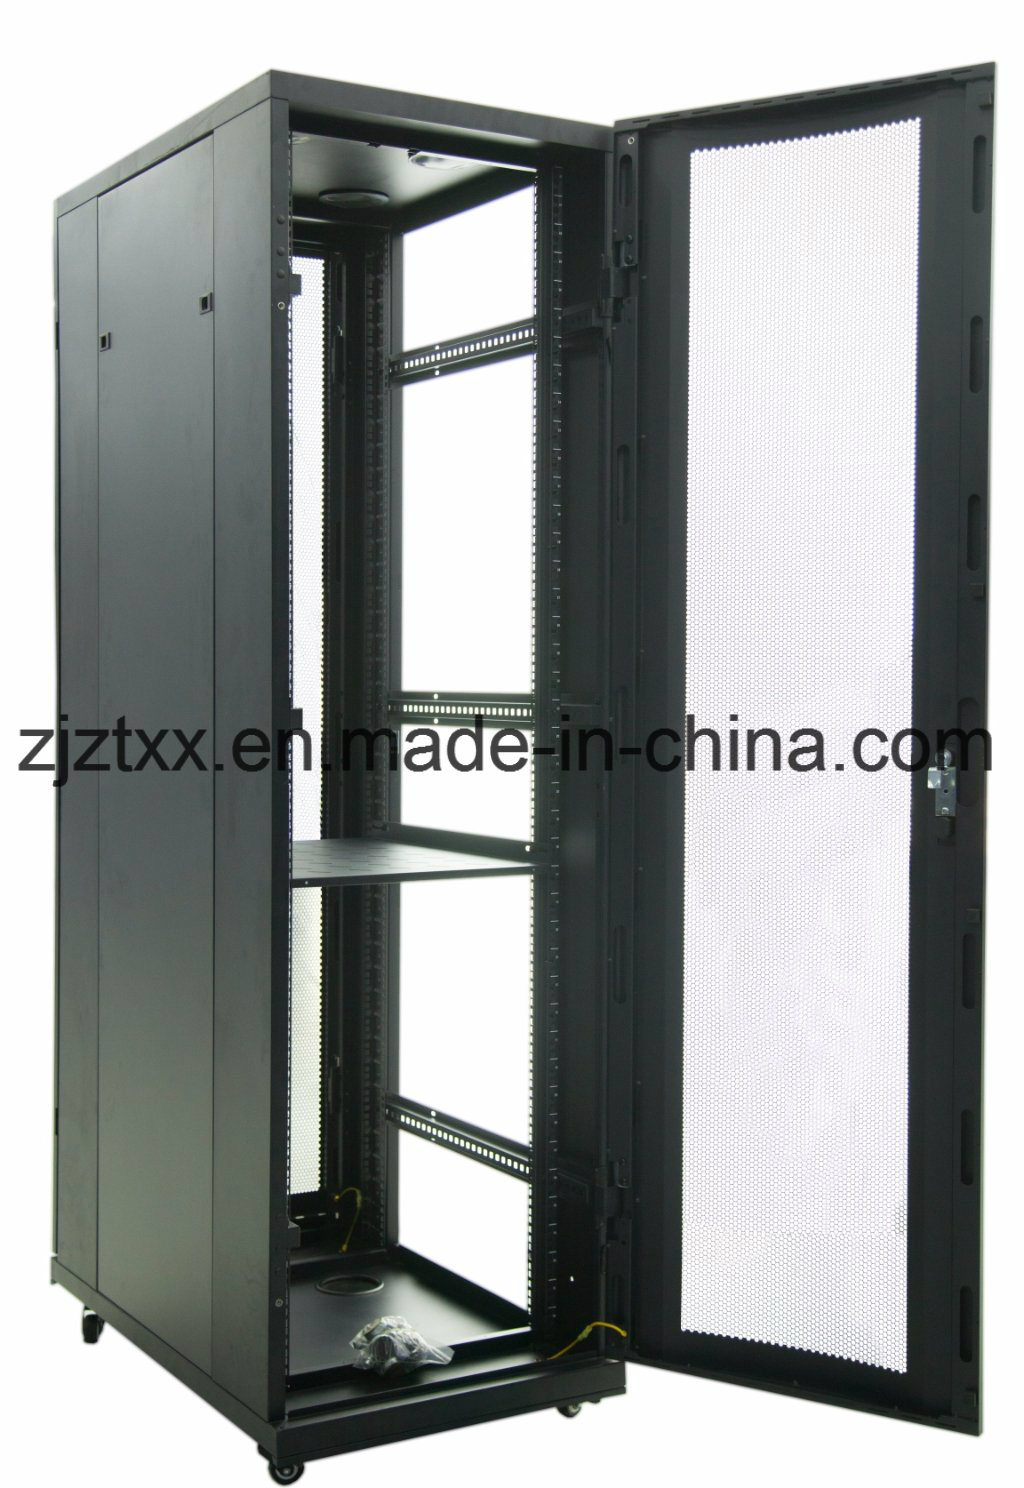 19 Inch Zt as Series Network Cabinet